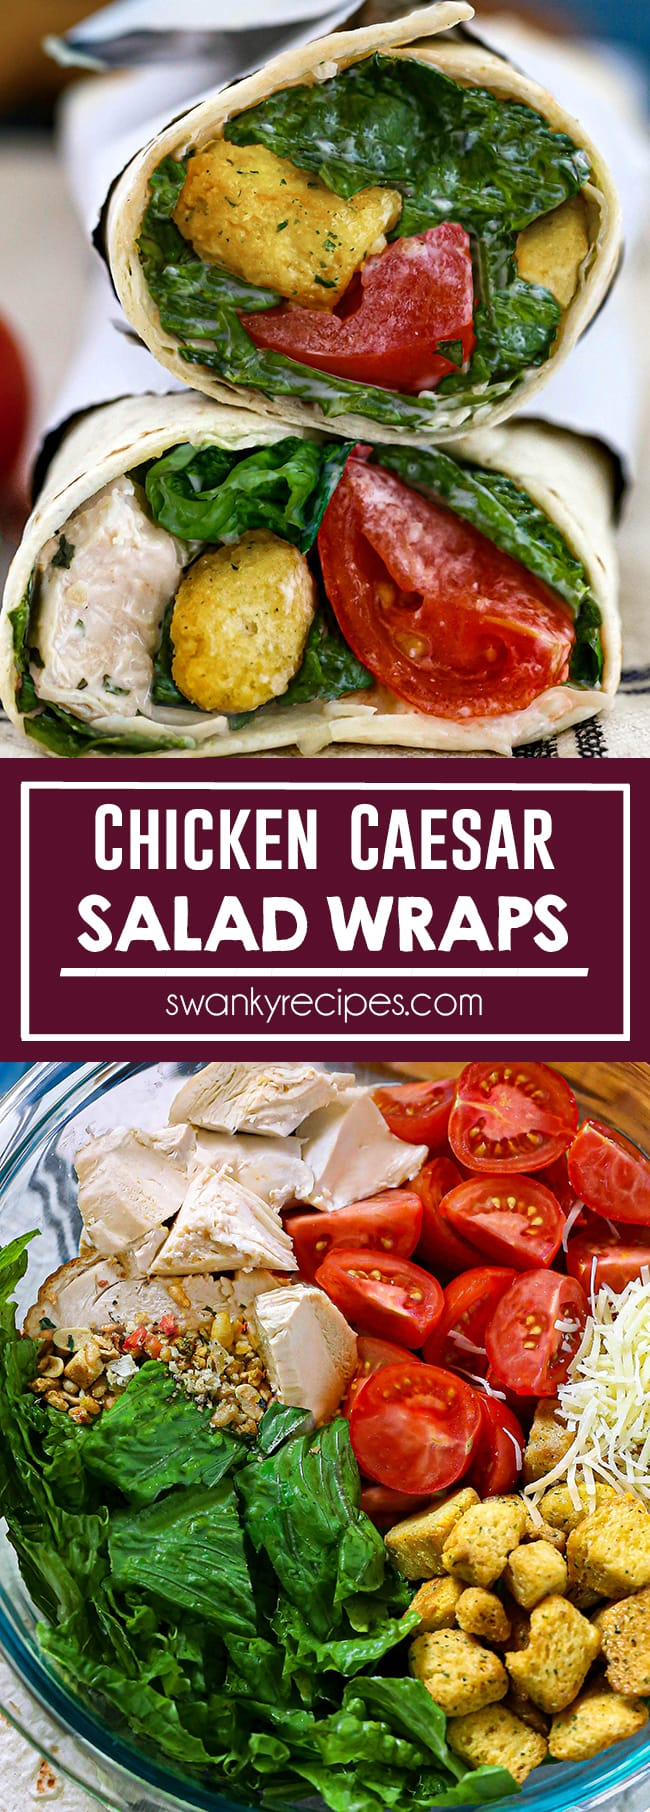 Chicken caesar wraps cut in half and stacked on top of each other on a white table napkin with black stripes. Each salad wrap is rolled in a white flour tortilla with green lettuce, red tomatoes, croutons, diced white chicken, and parmesan cheese tossed in a white caesar dressing. Chicken Caesar Salad Wraps text in white with purple background. Salad ingredients in a clear bowl on a blue platter with chopped lettuce, yellow croutons, shredded parmesan cheese, halved cherry tomatoes, and diced chicken with salad topping arranged in the bowl.